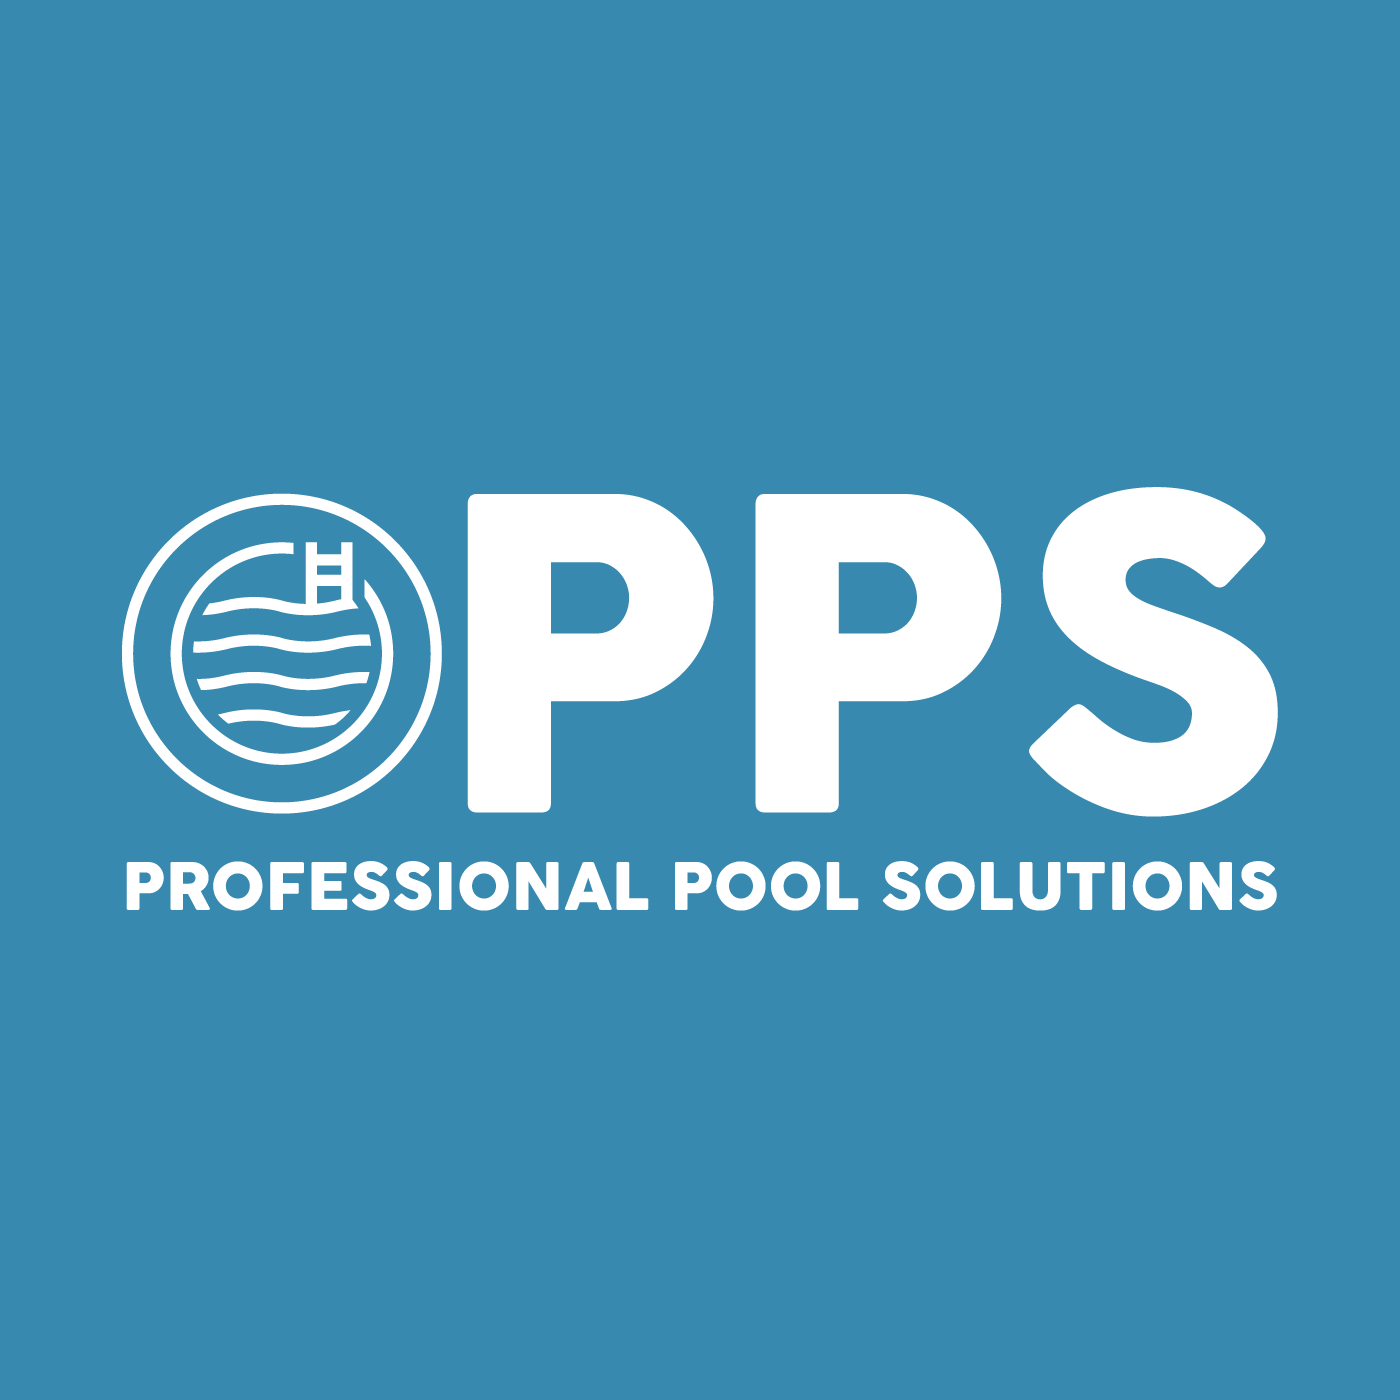 Professional Pool Solutions